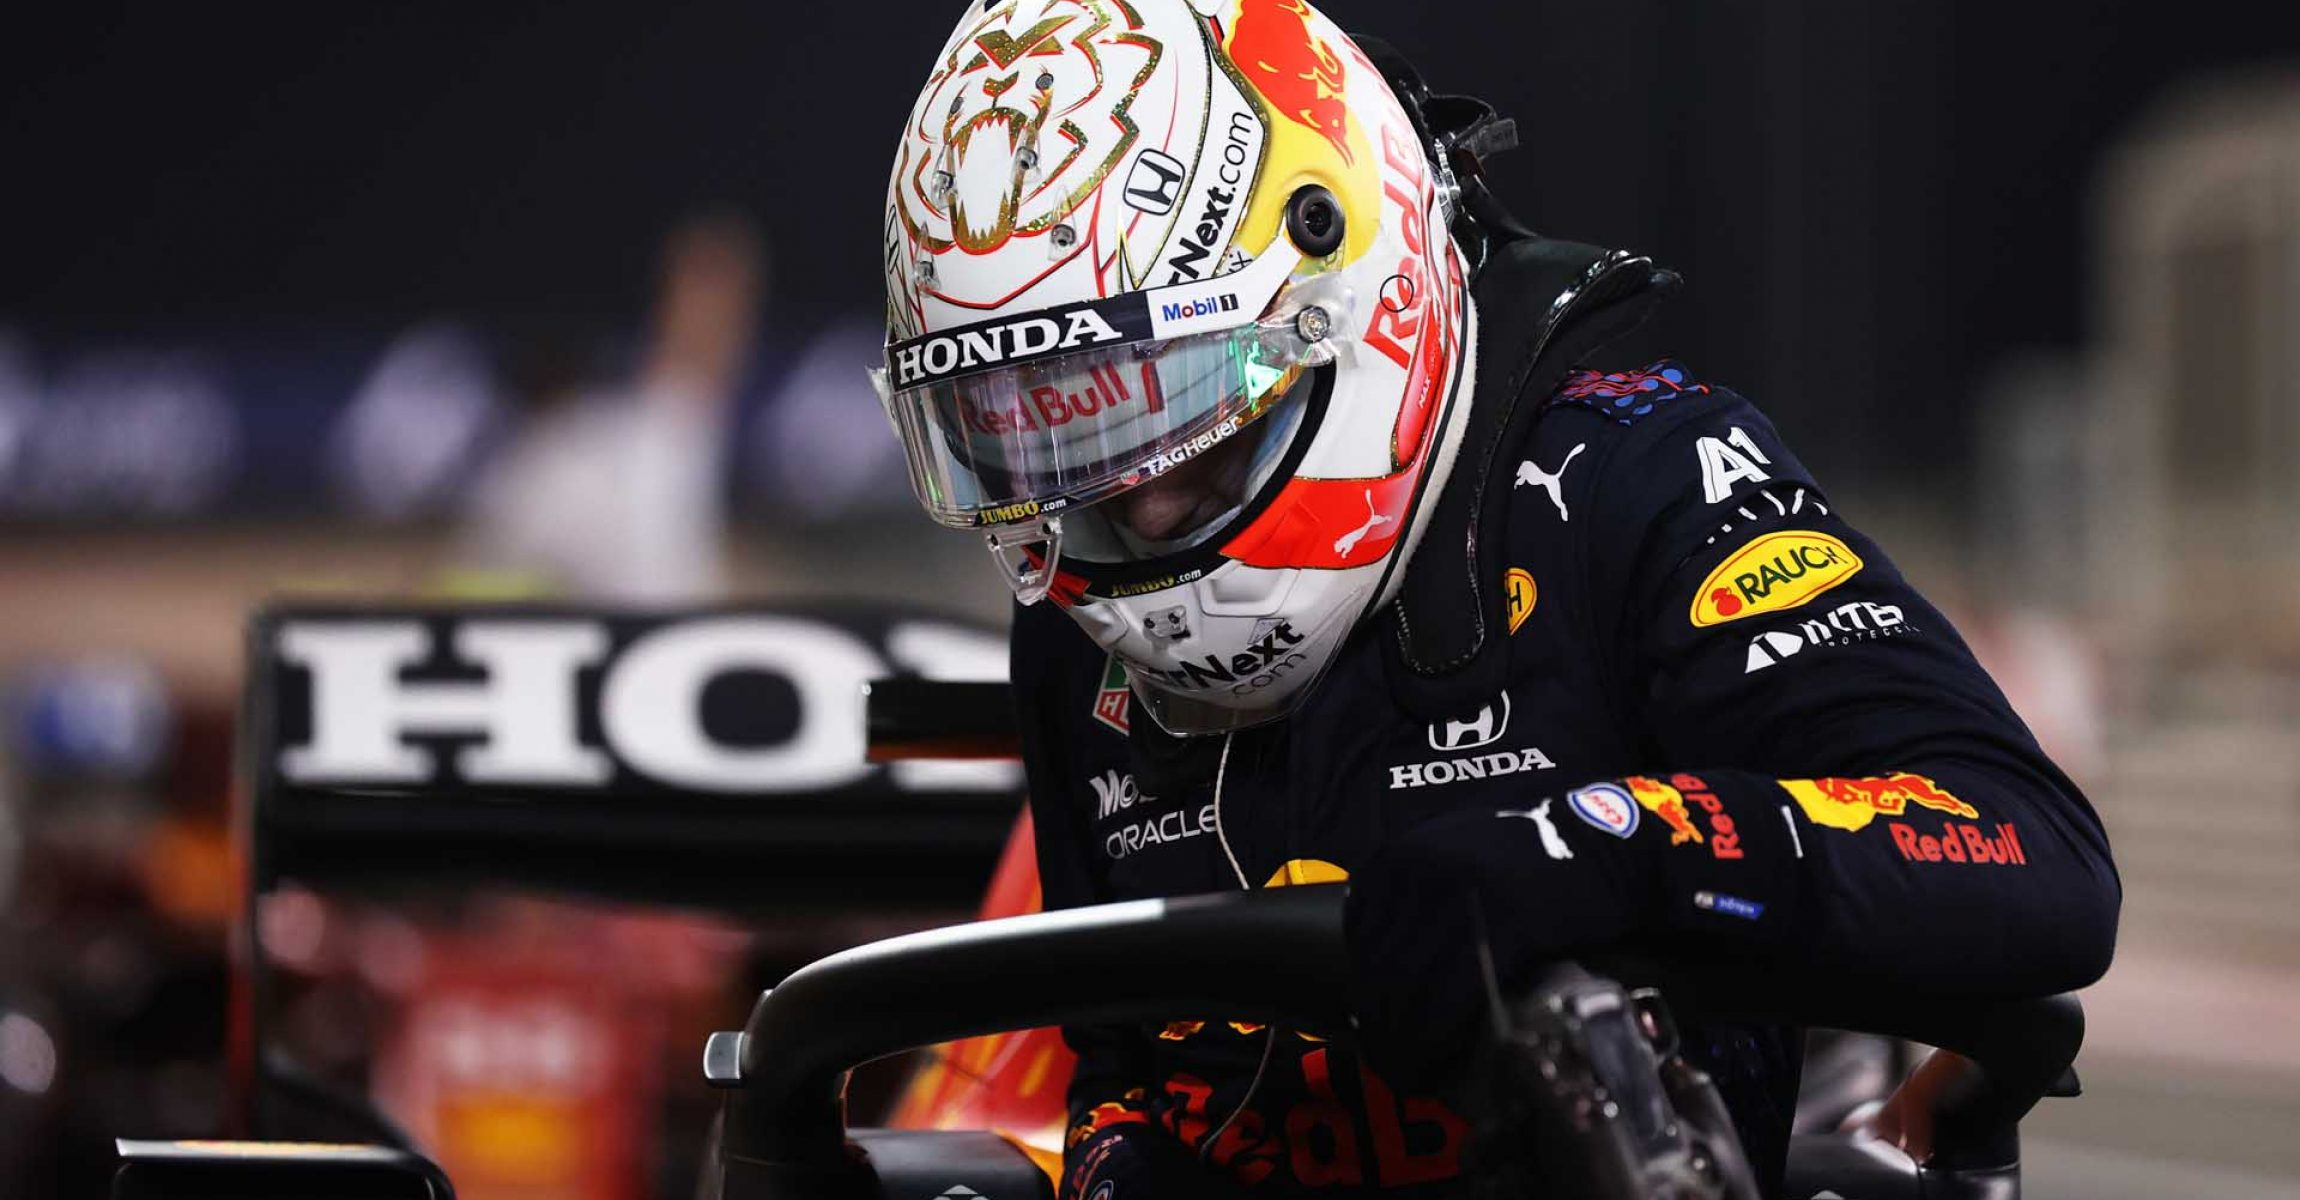 BAHRAIN, BAHRAIN - MARCH 27: Pole position qualifier Max Verstappen of Netherlands and Red Bull Racing climbs out of his car in parc ferme during qualifying ahead of the F1 Grand Prix of Bahrain at Bahrain International Circuit on March 27, 2021 in Bahrain, Bahrain. (Photo by Lars Baron/Getty Images)